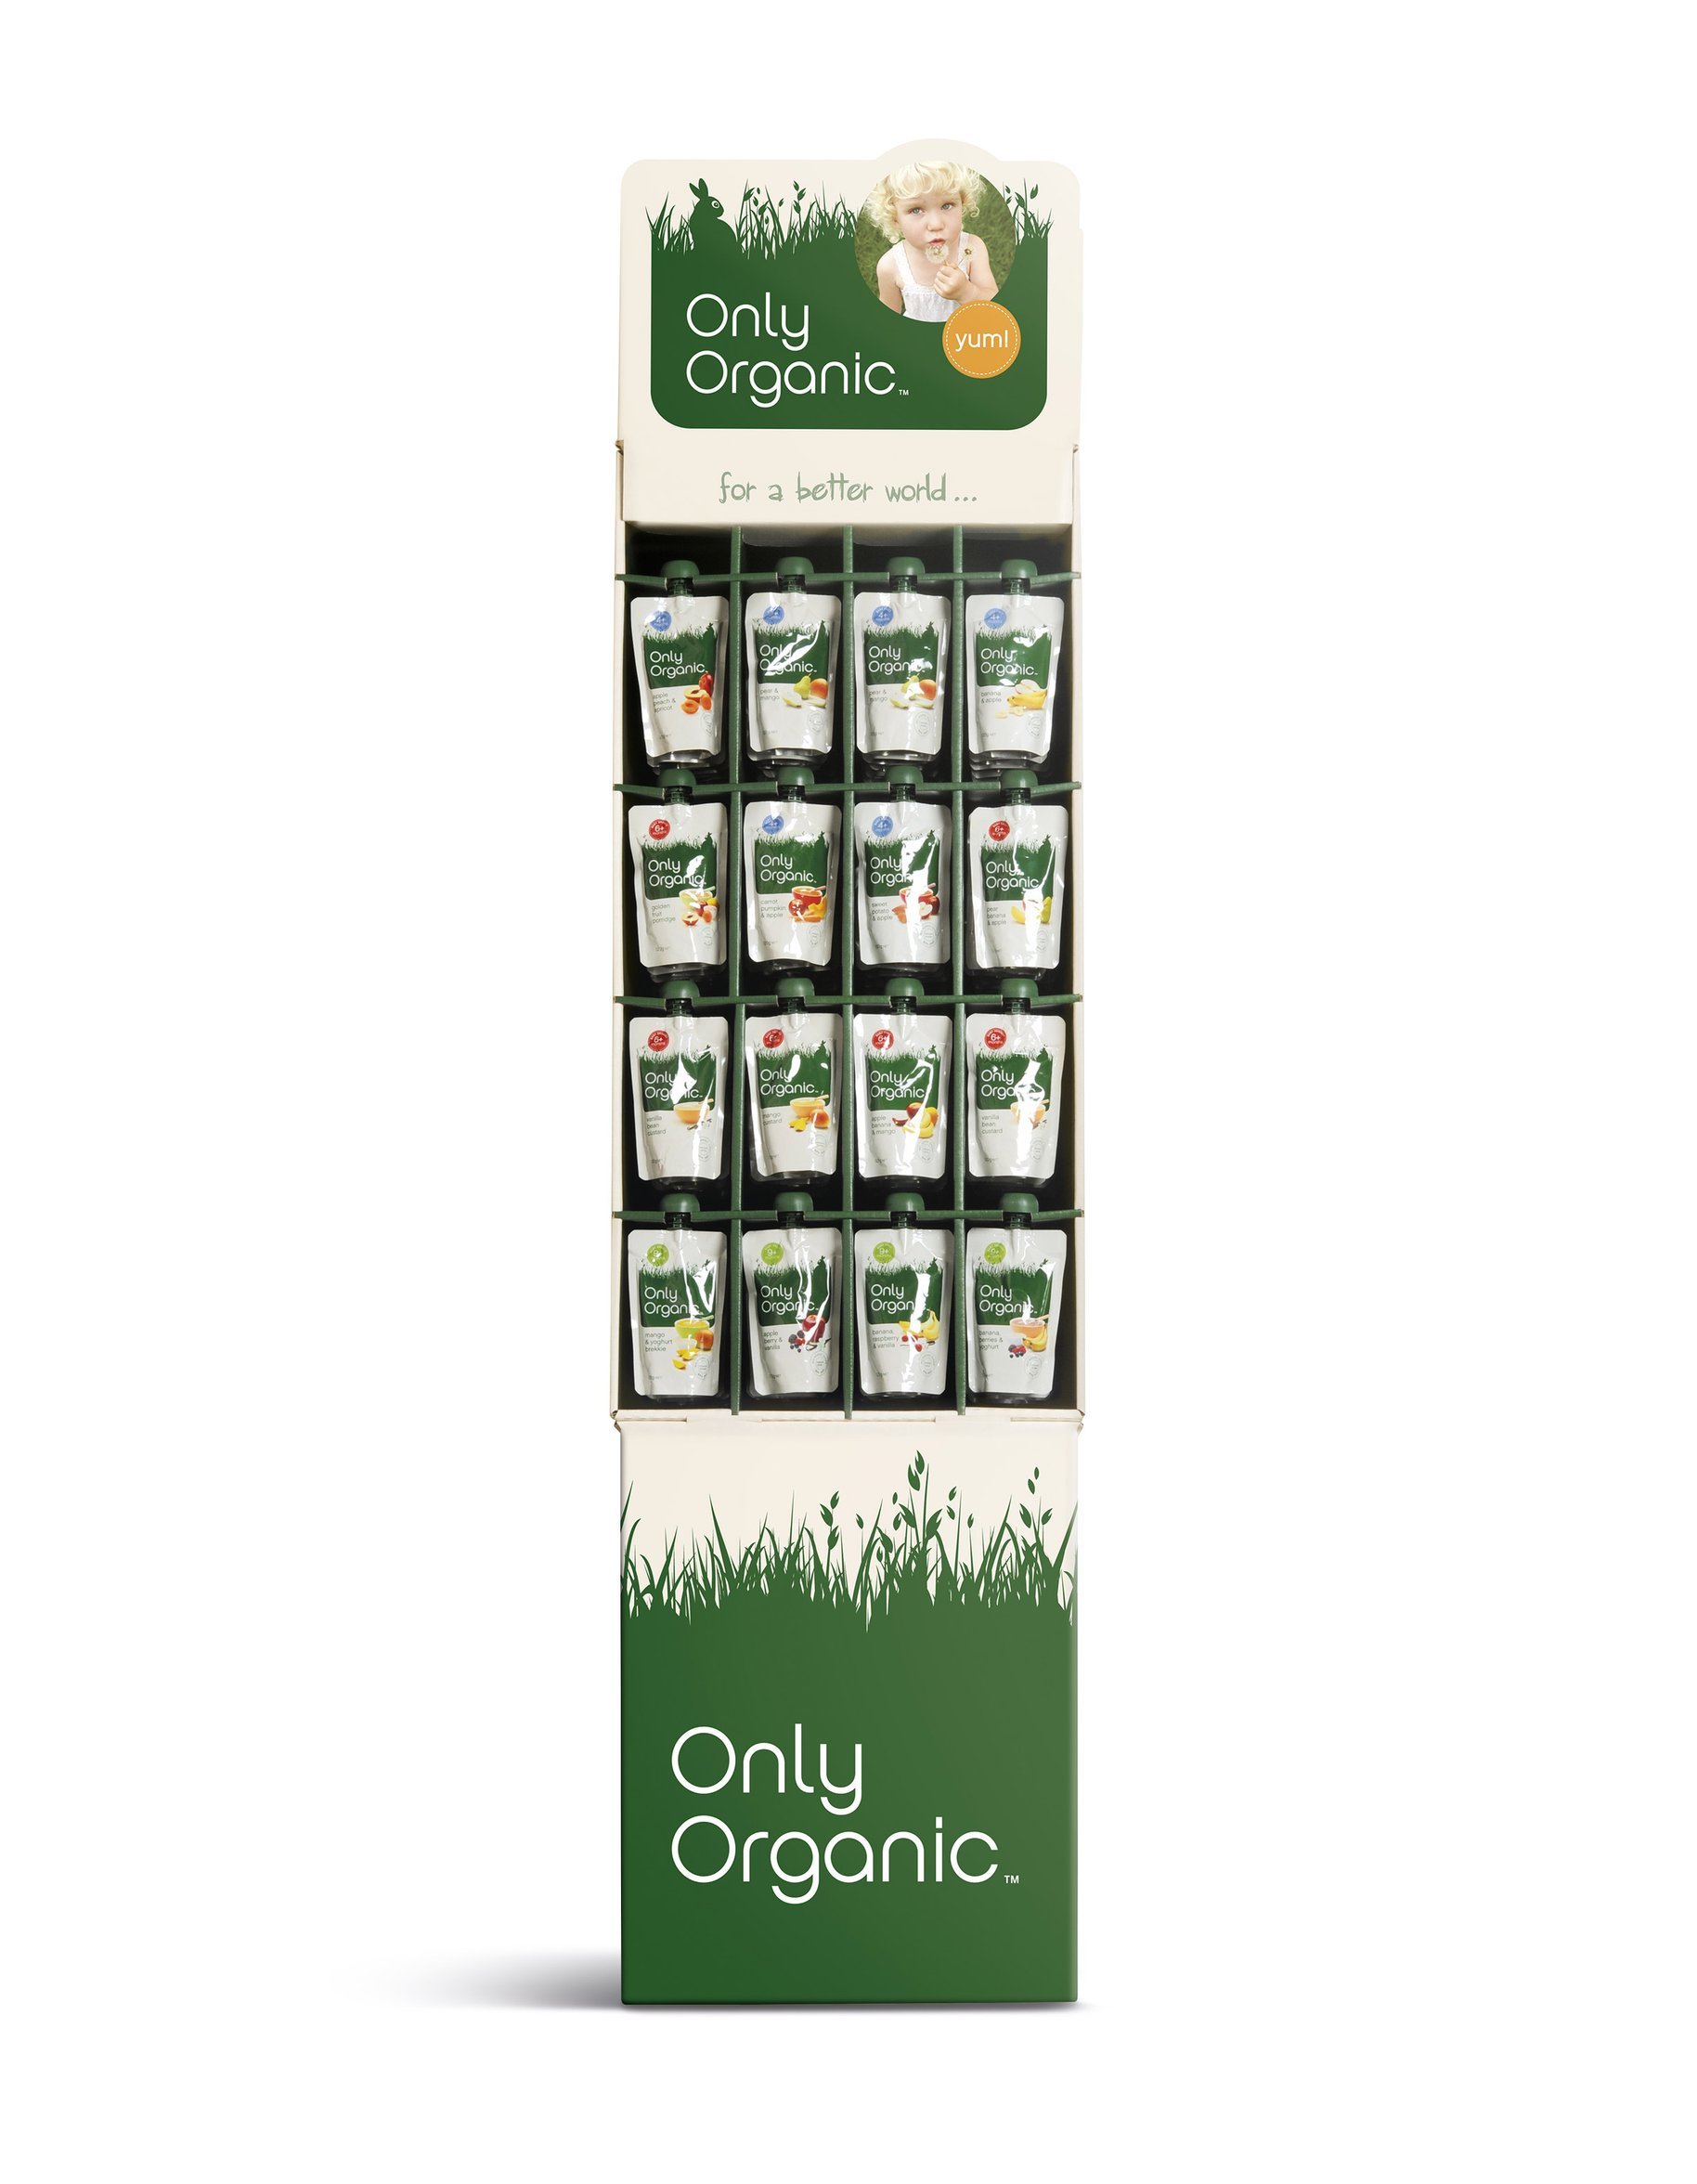 Only Organic pouch packaging display stand